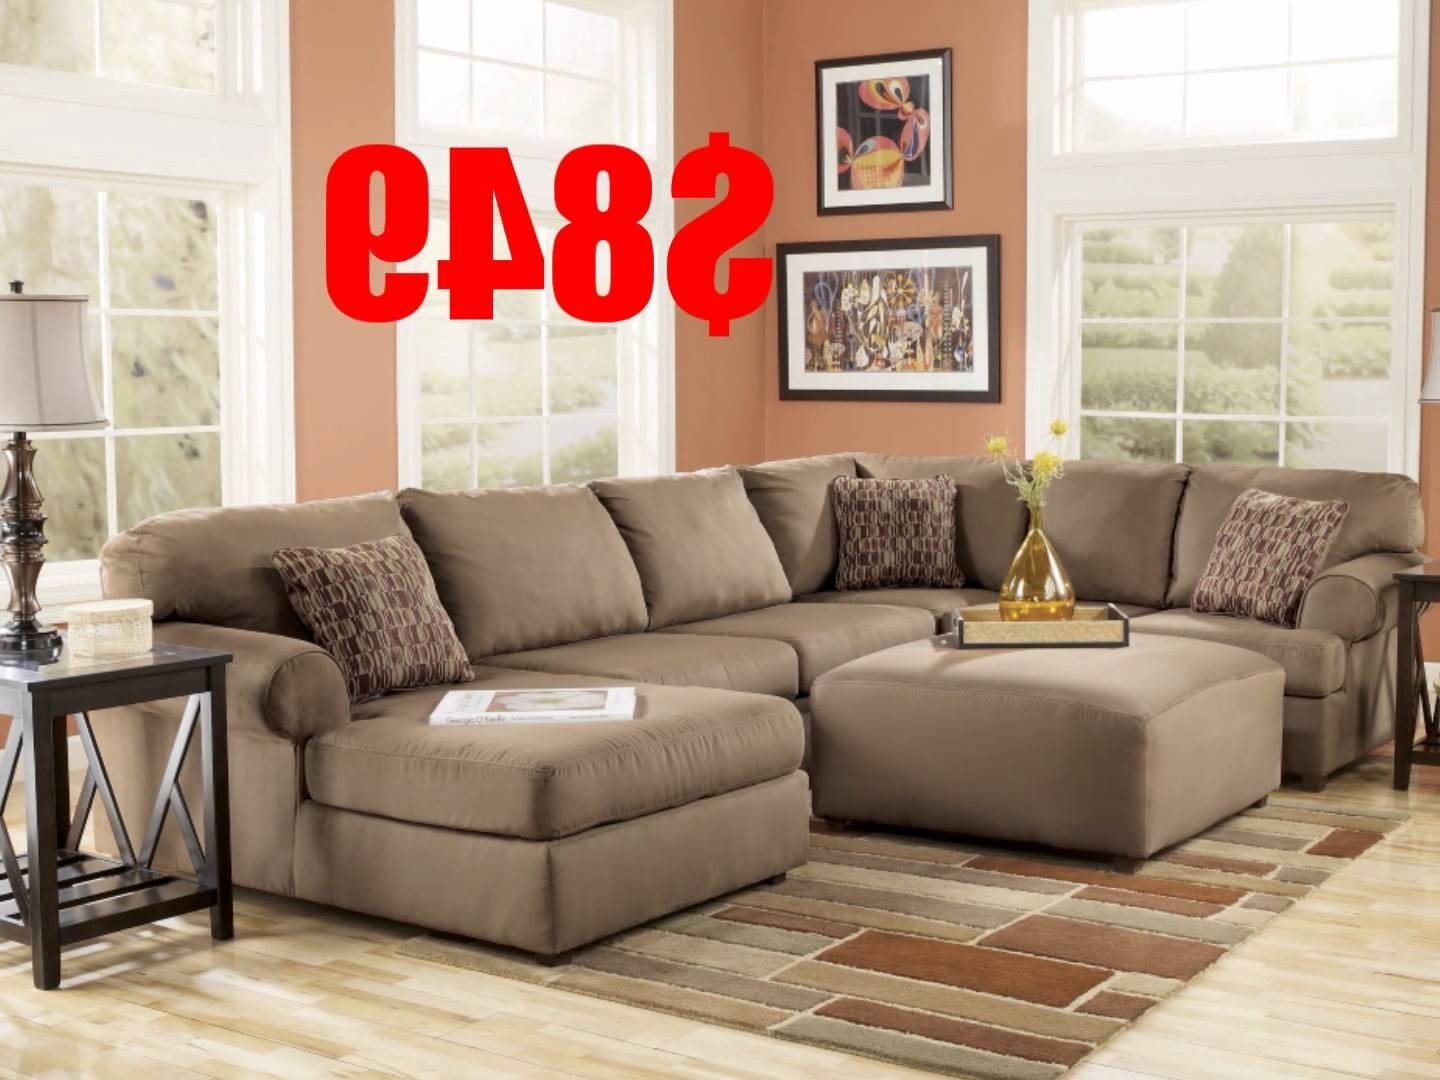 Widely Used Beautiful Ashley Furniture Sofas Sectionals Pictures – Liltigertoo For Sectional Sofas At Ashley Furniture (View 15 of 15)